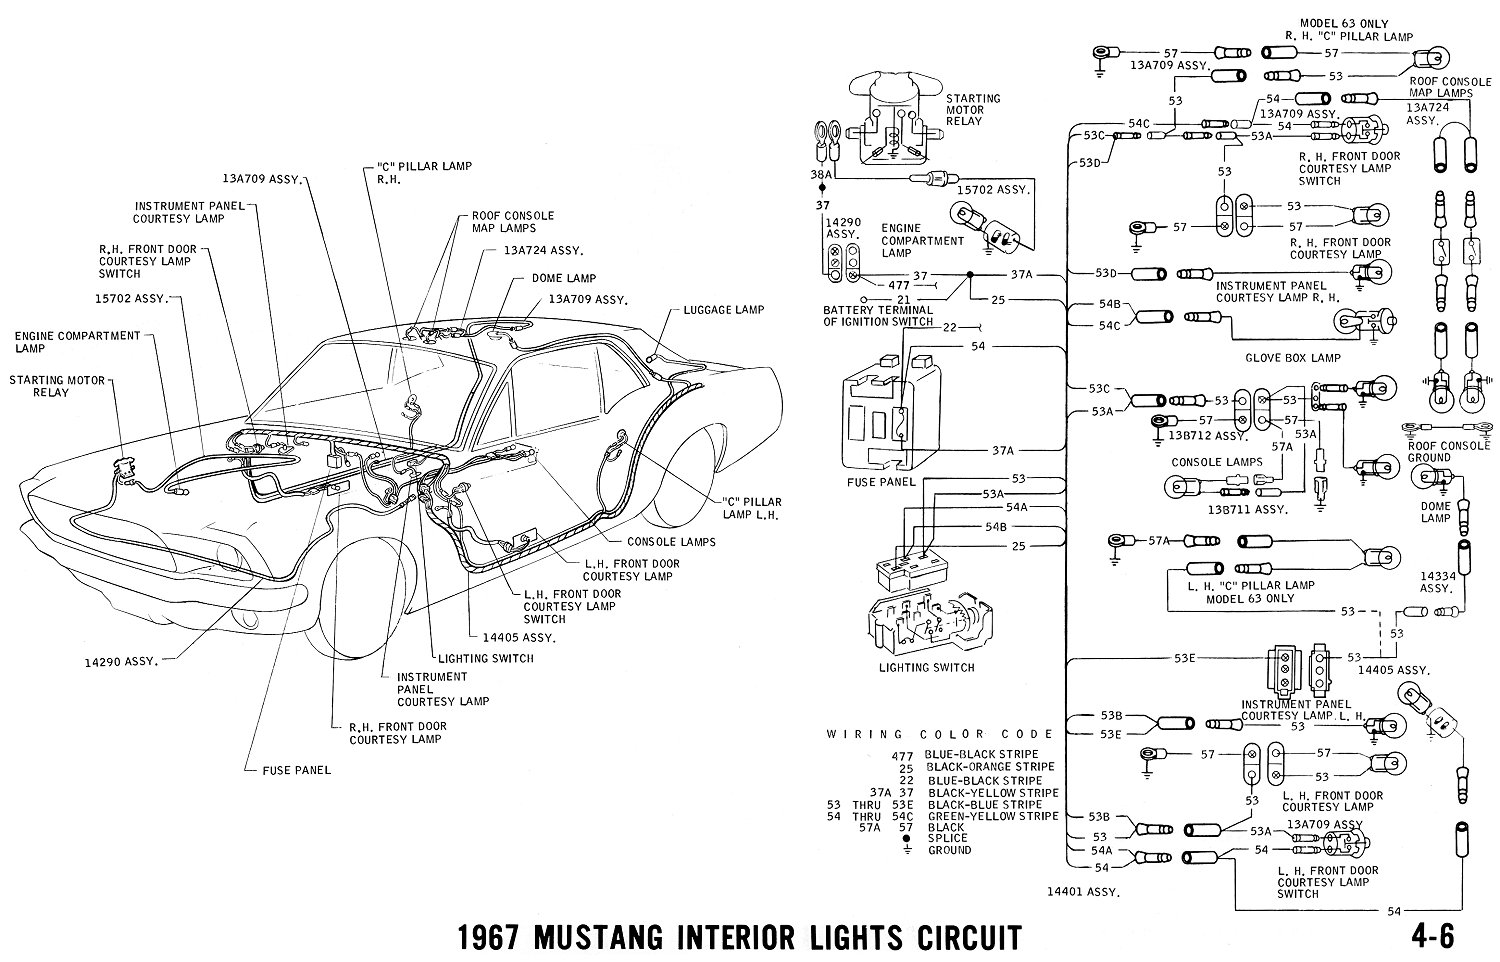 hight resolution of fuse block diagram for 1967 mustang wiring diagrams for ford 67 underhood fuse block diagram